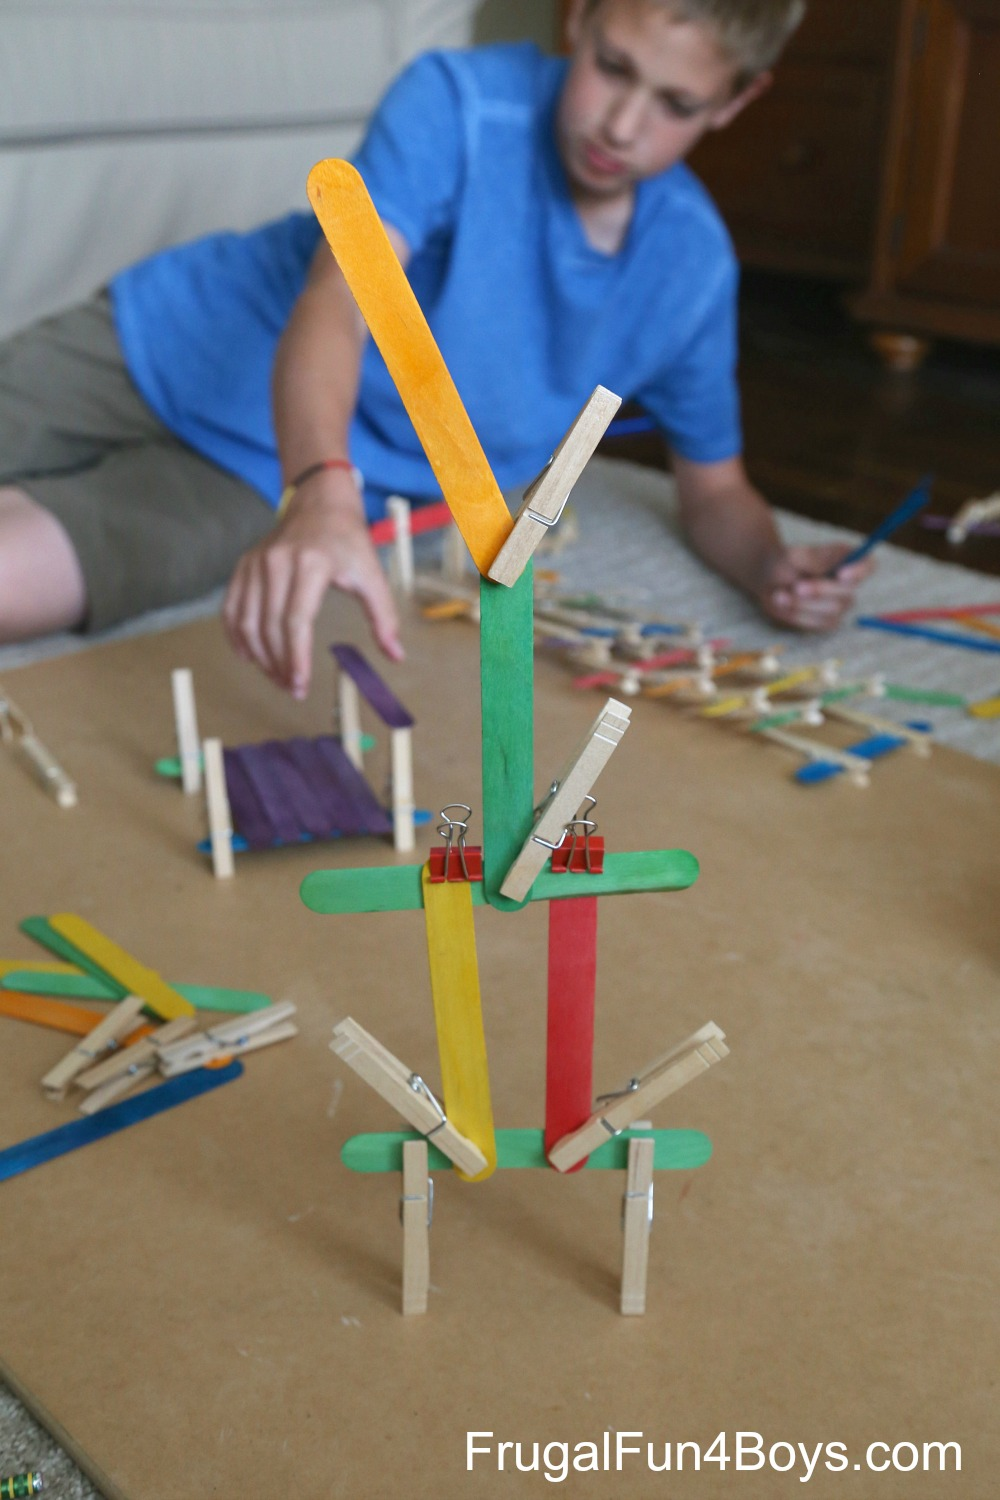 Five Engineering Challenges with Clothespins, Craft Sticks, and Binder Clips